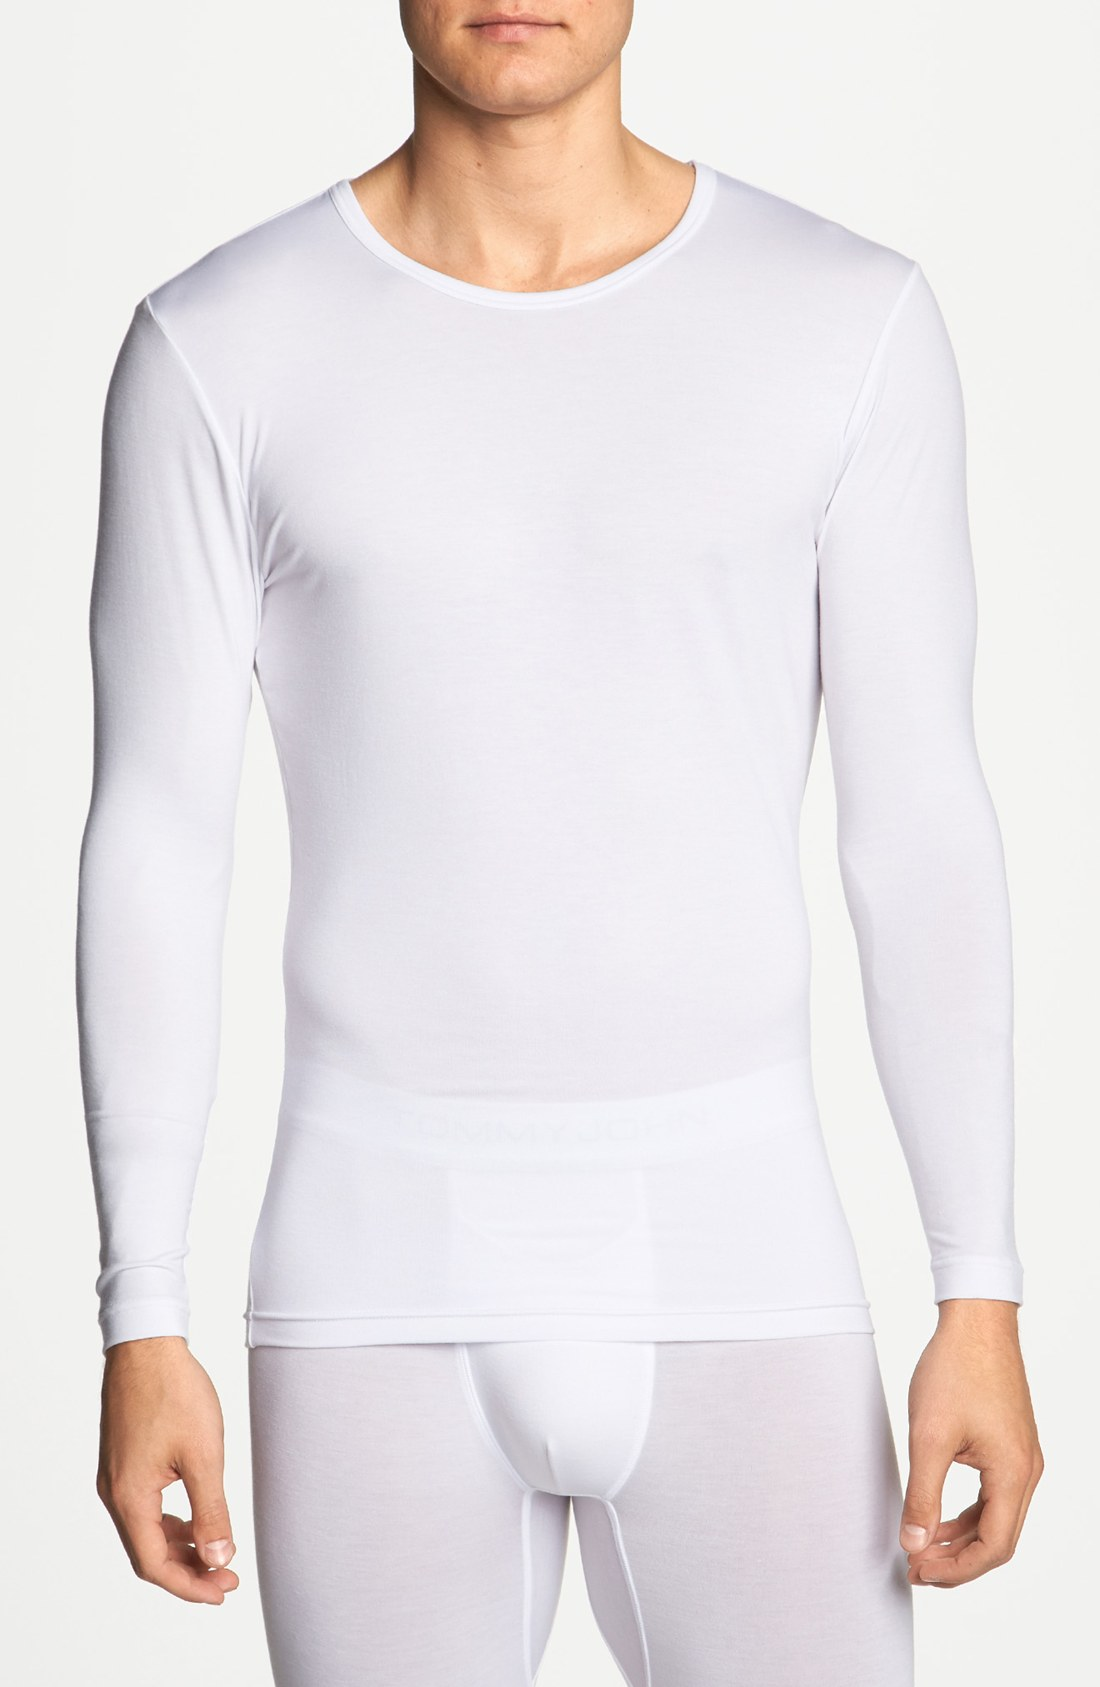 Find Long Sleeve Shirts at shopnew-5uel8qry.cf Enjoy free shipping and returns with NikePlus.